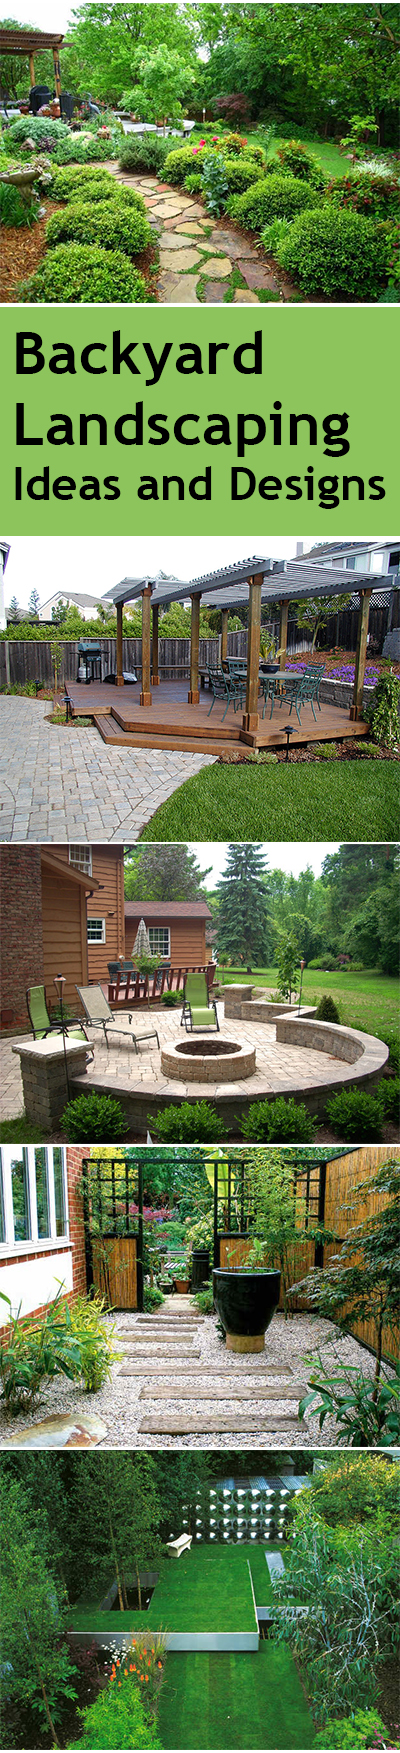 Backyard-Landscaping-Ideas-and-Designs-1